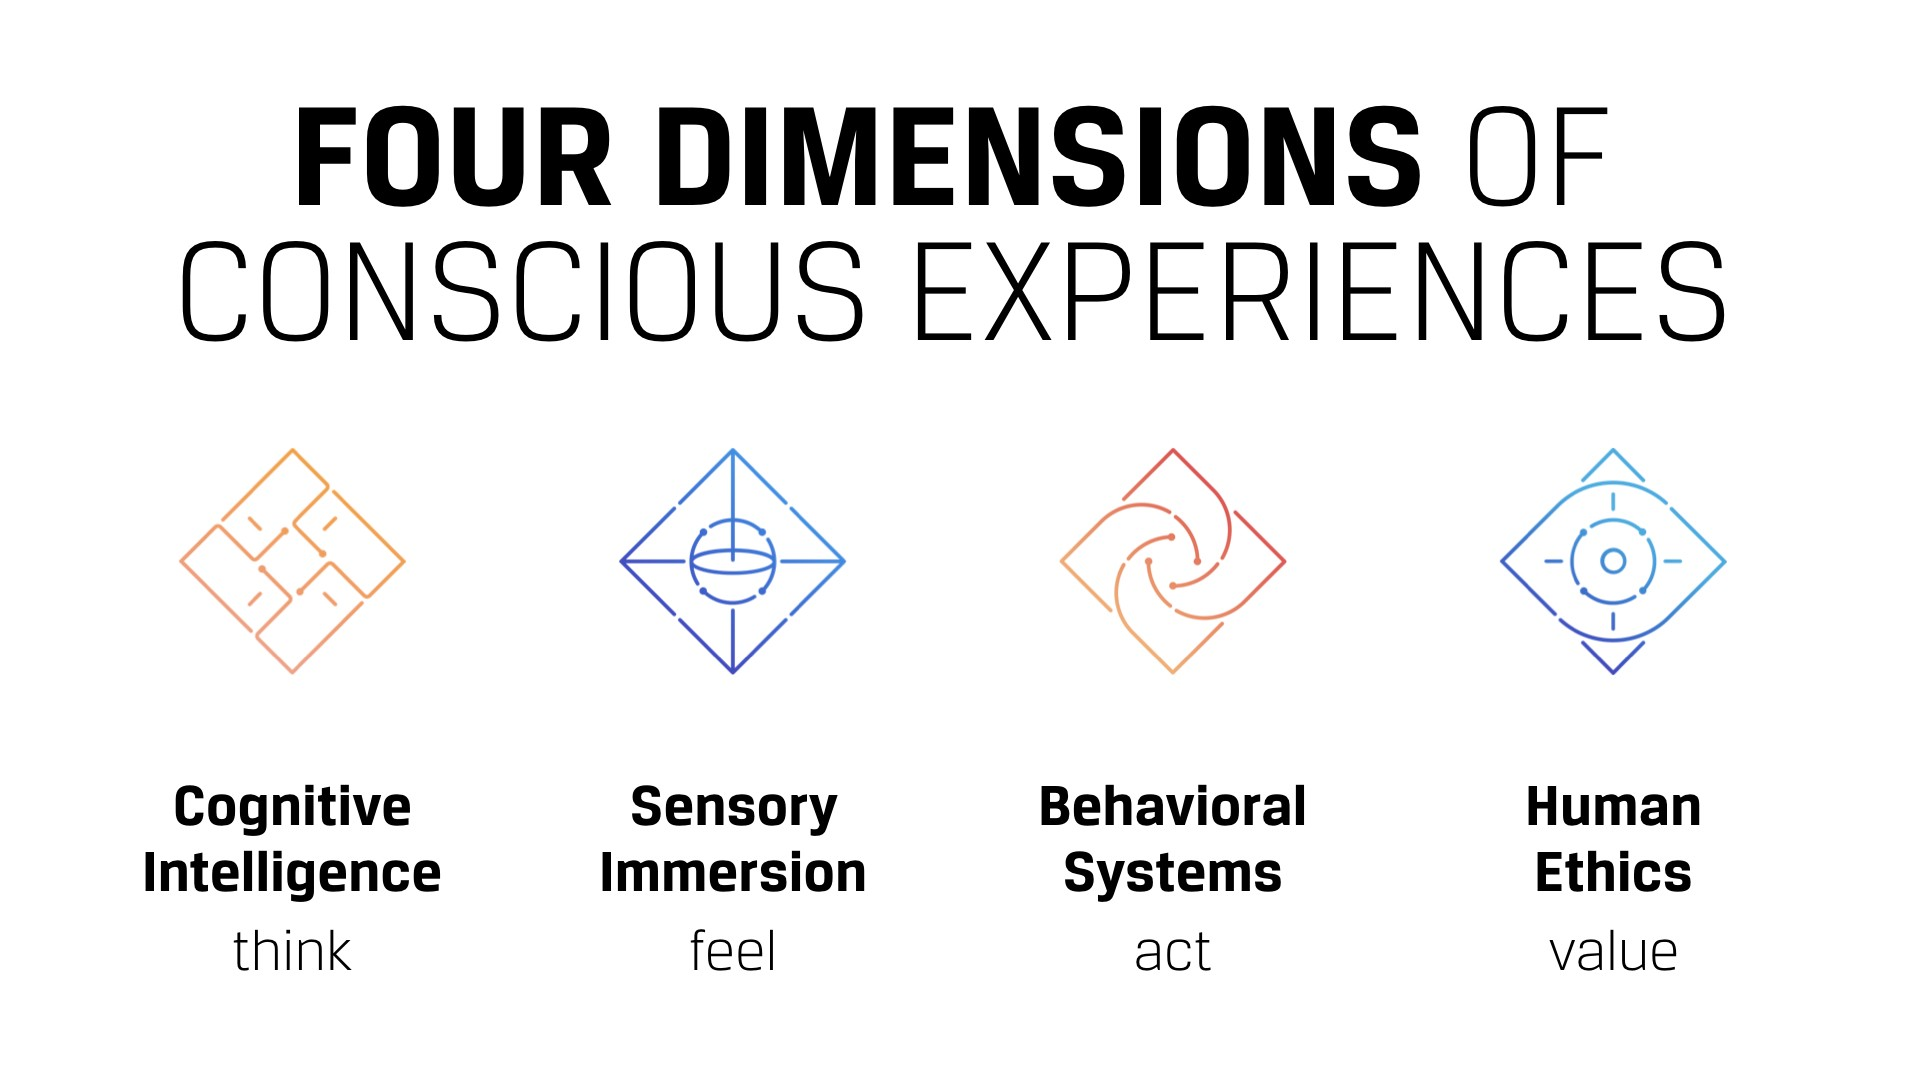 Four Dimensions of Conscious Experiences: Cognitive Intelligence, Sensory Immersion, Behavioral Systems, Human Ethics